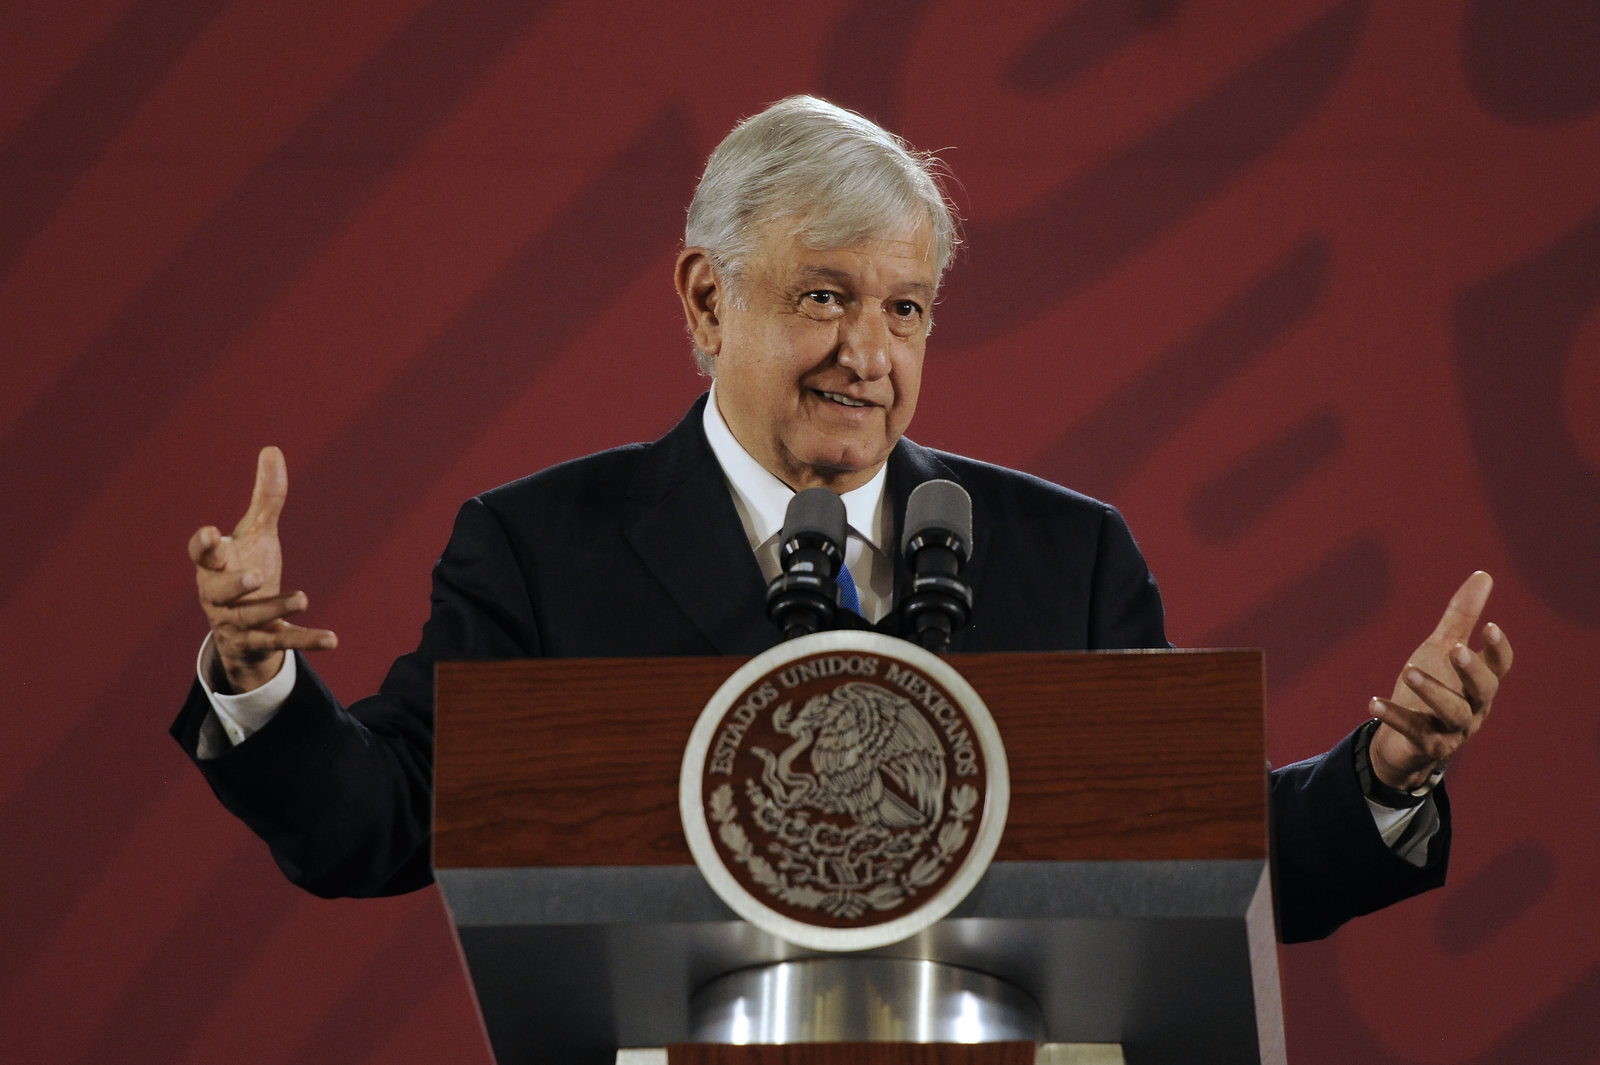 Mexican President Andrés Manuel López Obrador has not been to any international conference so far. Critics said it is a damage to their national image. Photo Courtesy: Pedro Martin Gonzalez Castillo | Getty Images